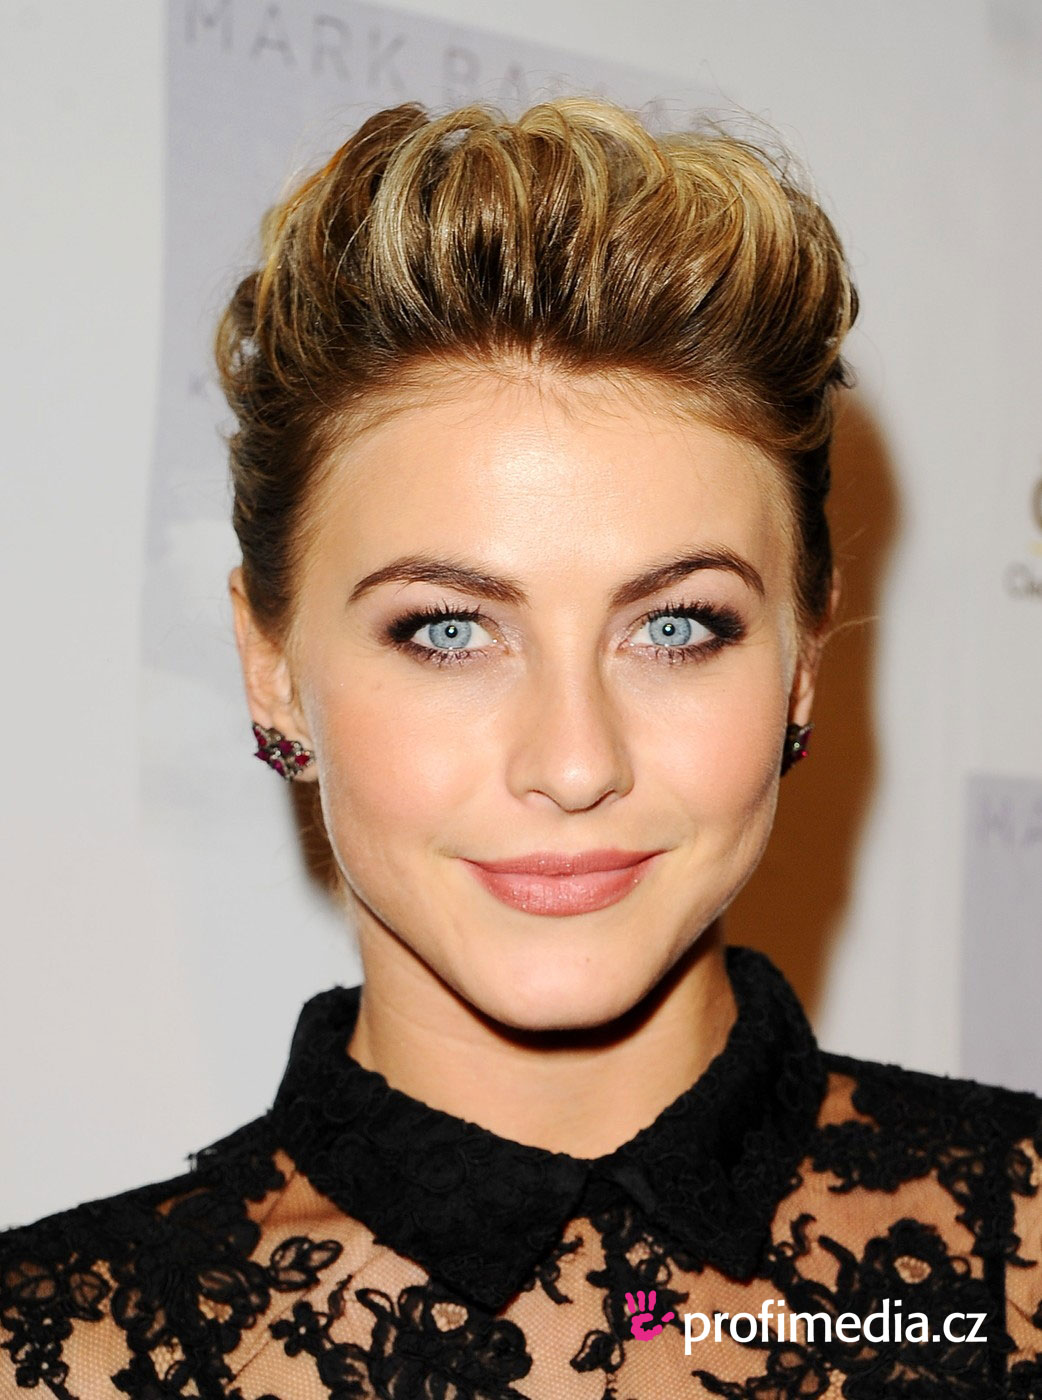 Julianne hough coiffure happyhair for Miroir virtuel coiffure